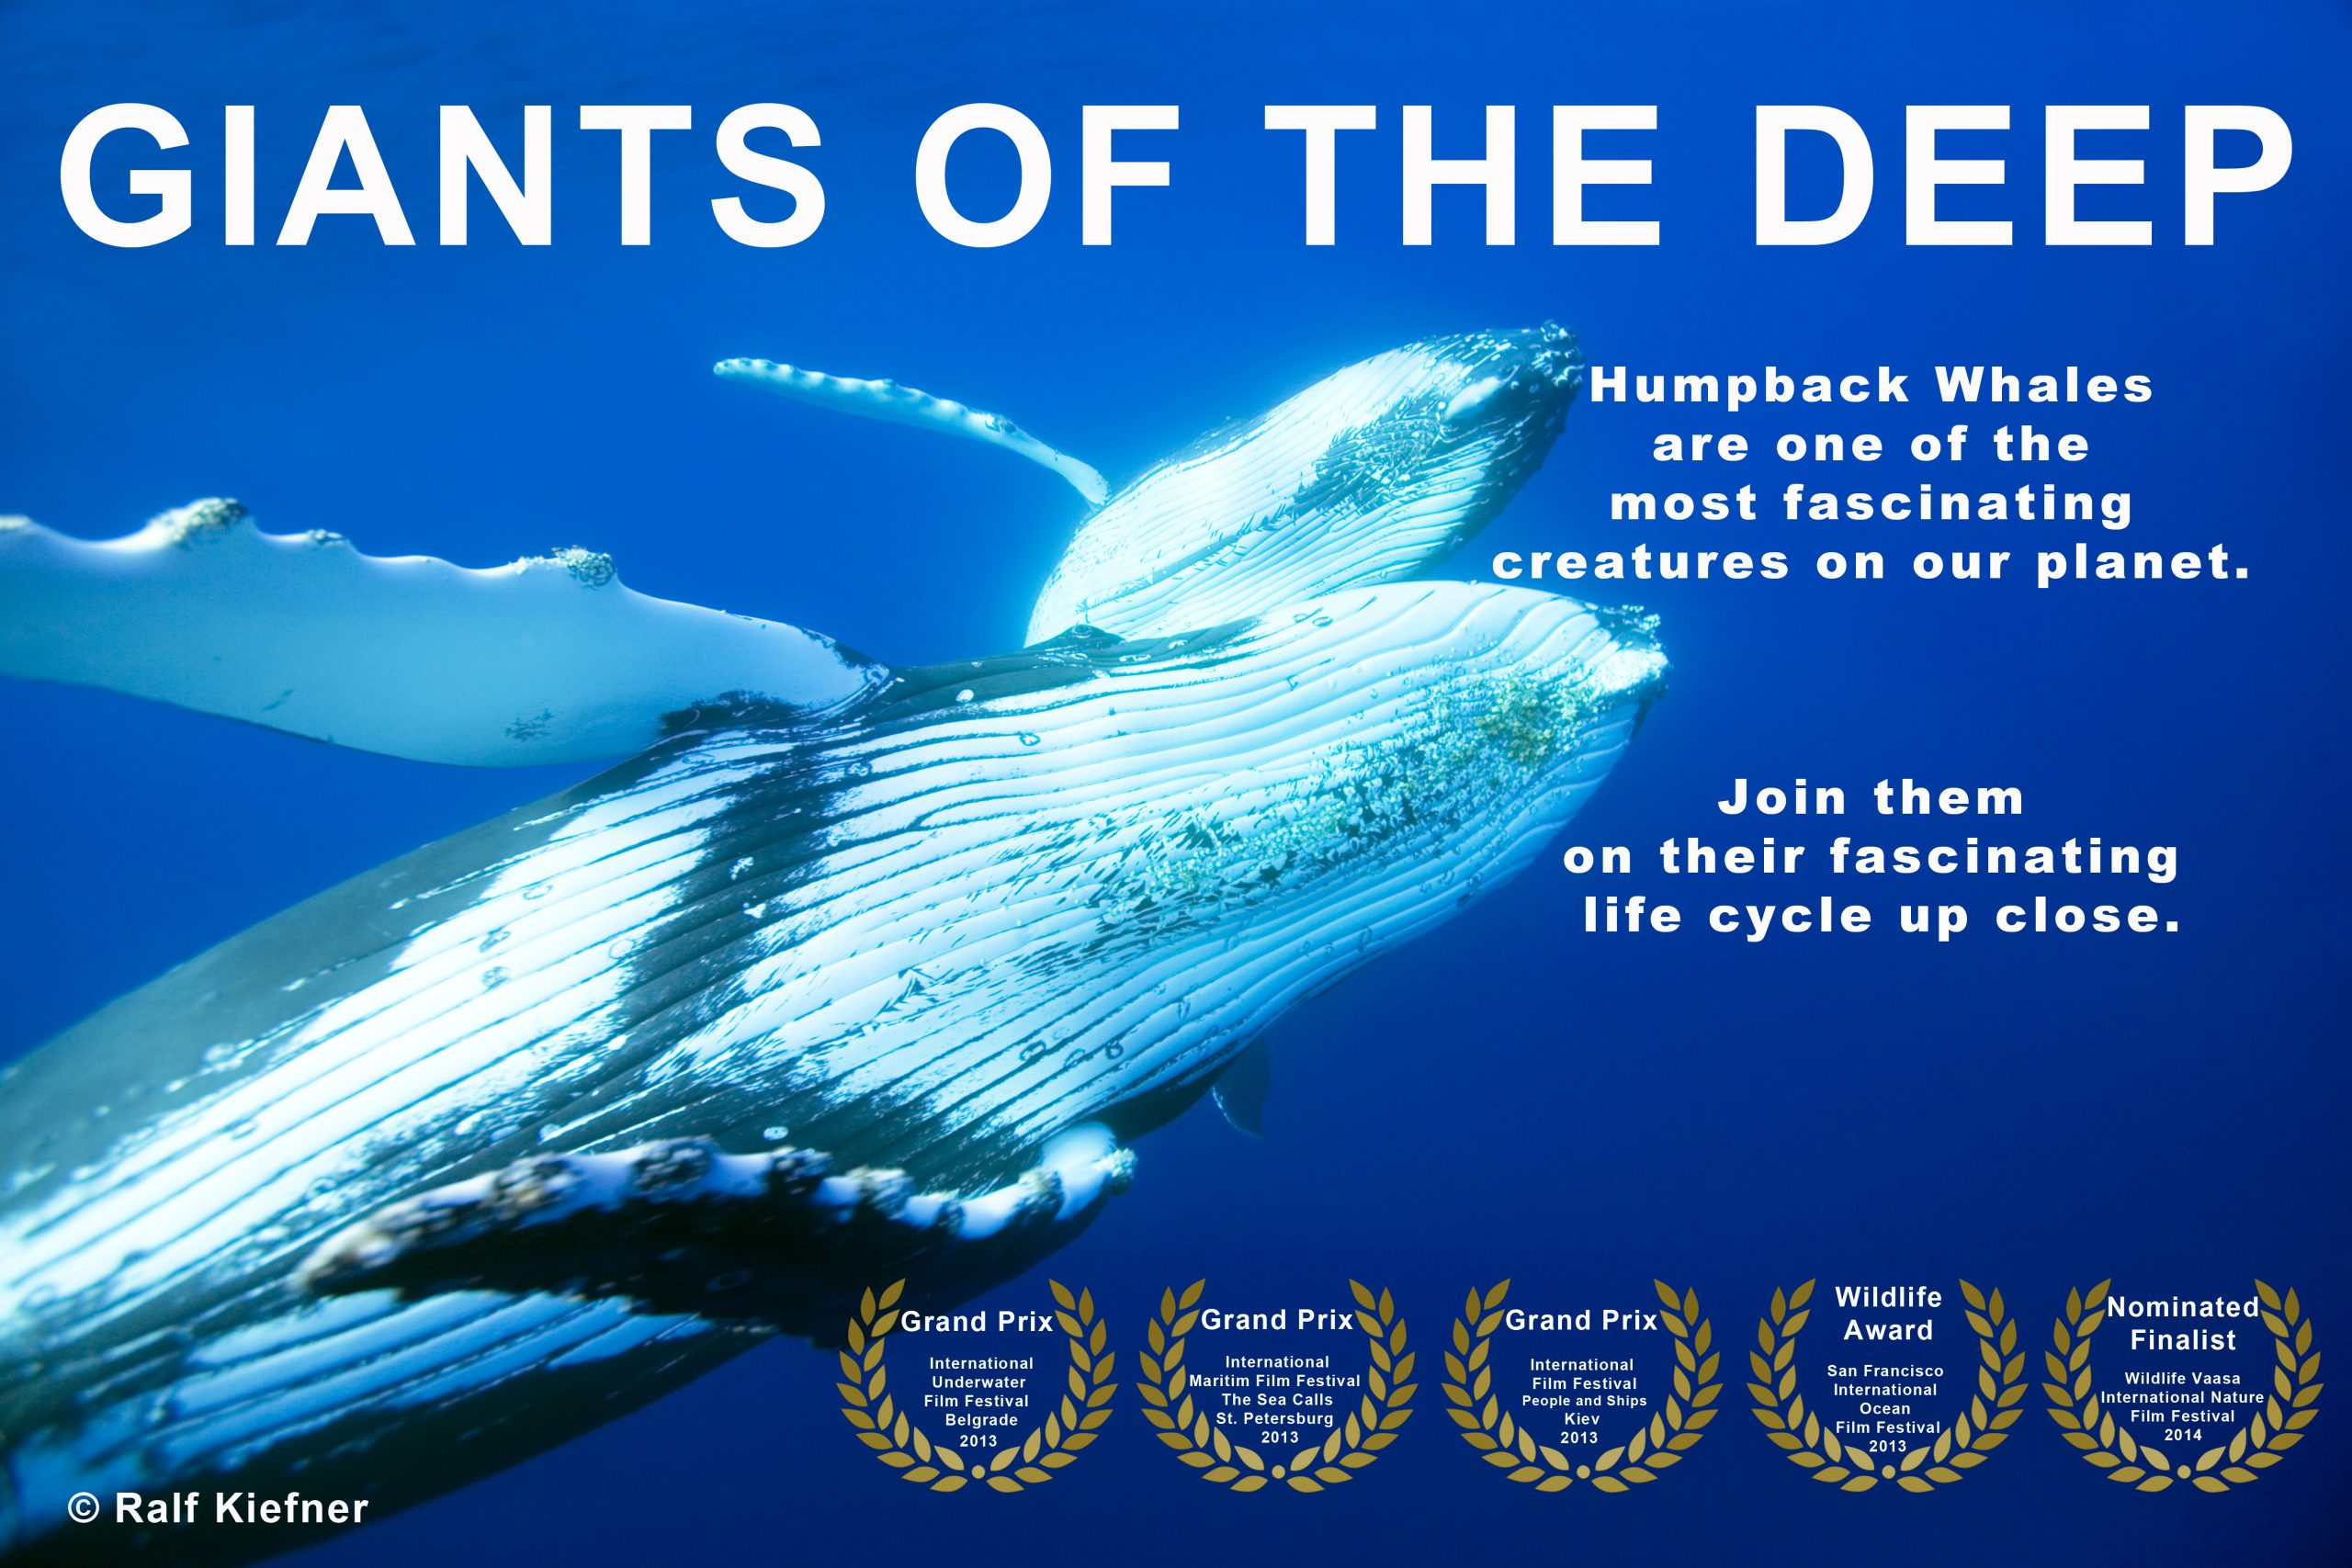 Giants of the deep - Humpback Whales